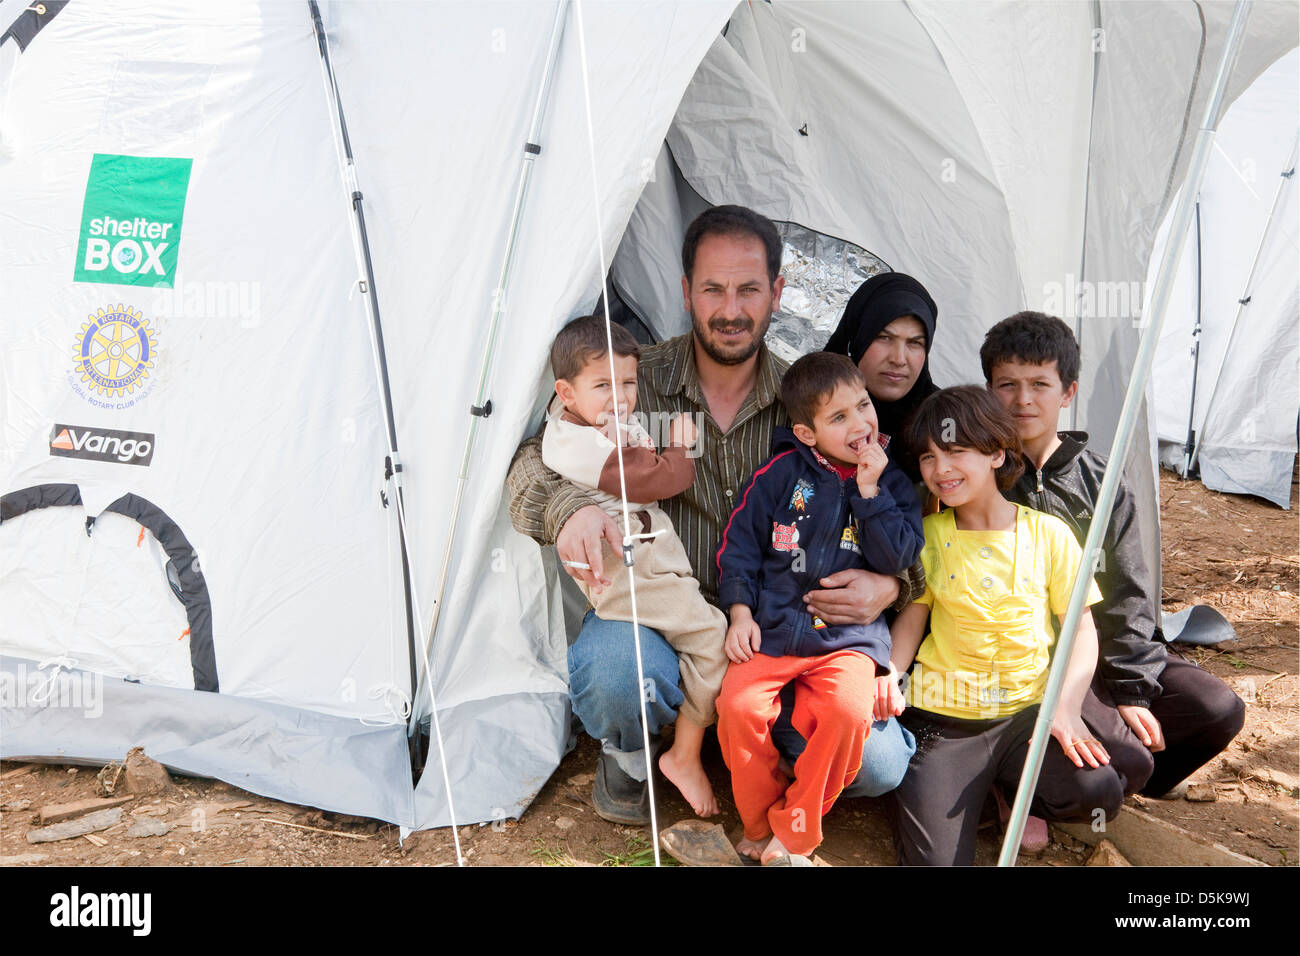 Refugee family, from Homs at a makeshift refugees camp in El Minie, NE Lebanon with their new ShelterBox tent - Stock Image